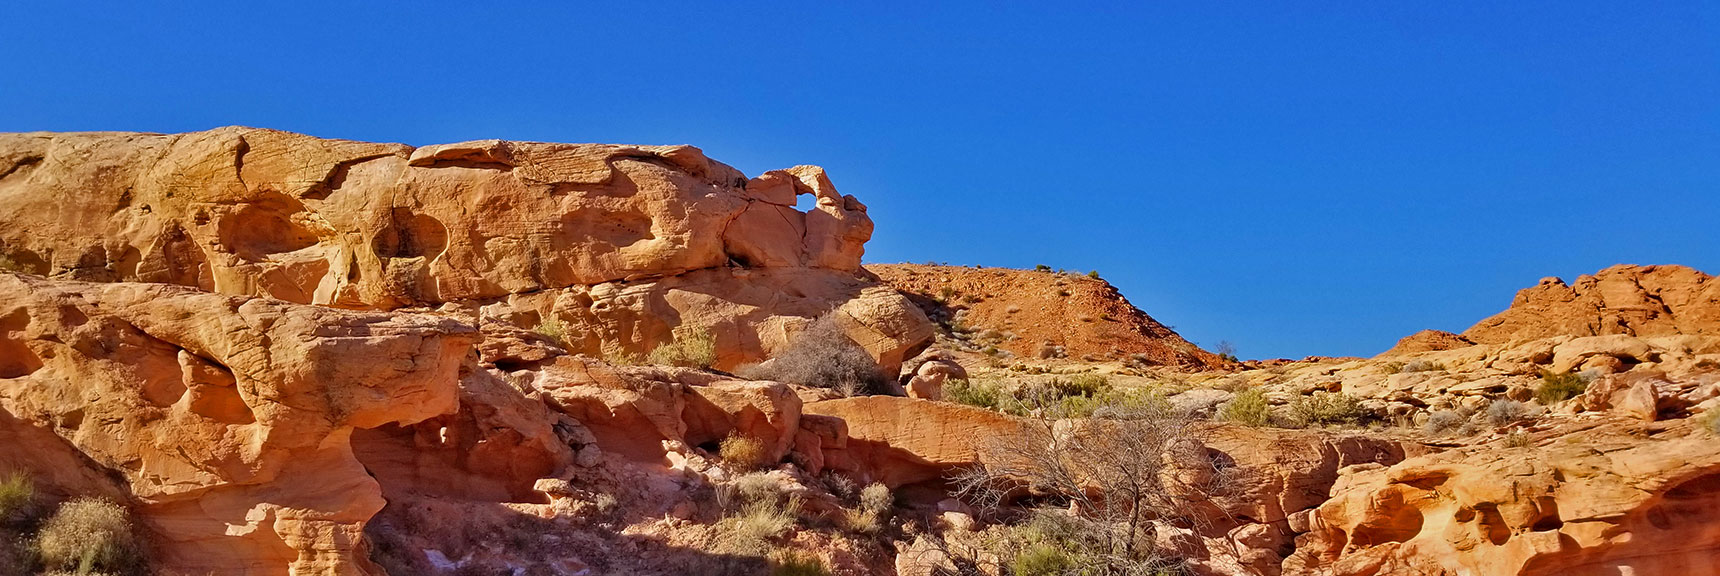 Beautiful Rock Formations on Prospect Trail Near White Domes Loop in Valley of Fire State Park, Nevada